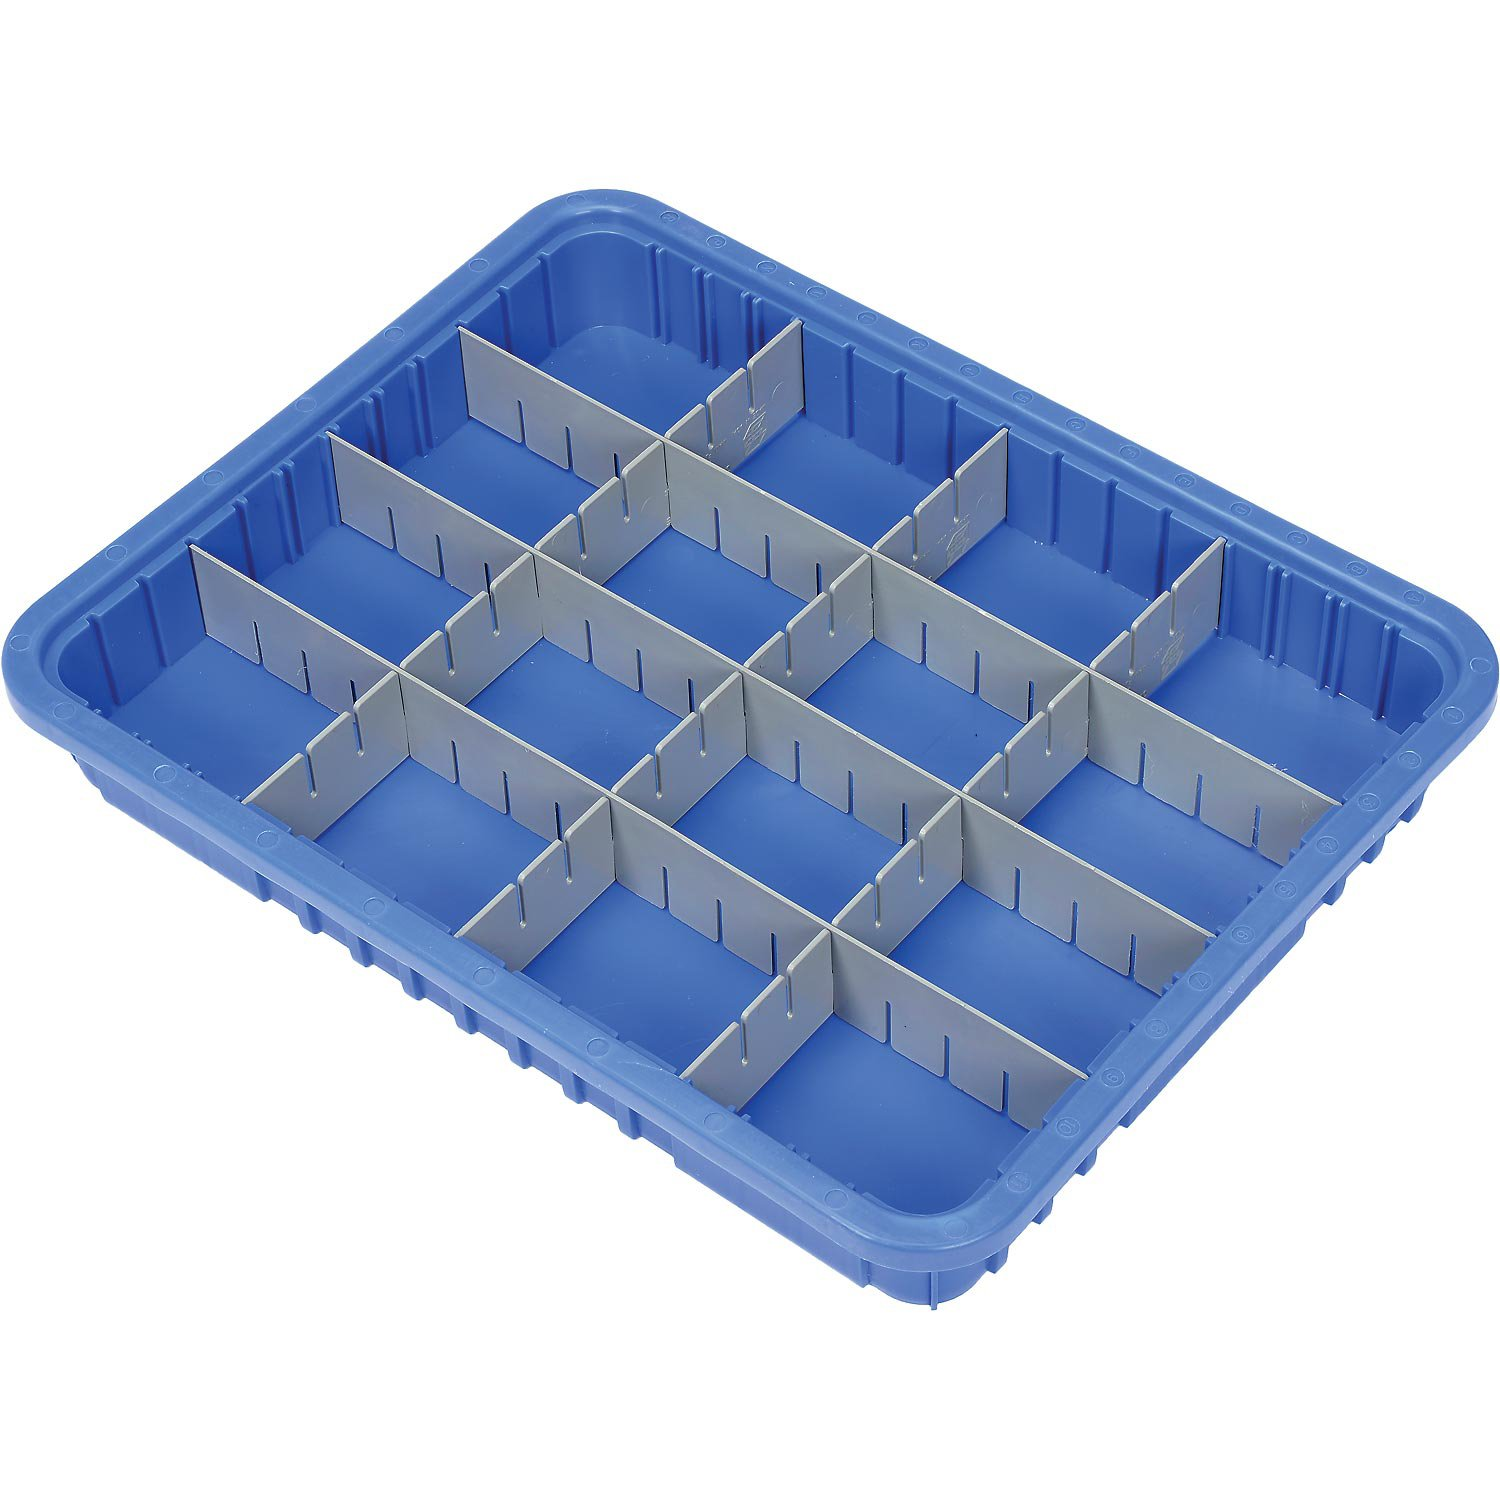 Plastic Dividable Grid Container, 22-1/2''L x 17-1/2''W x 3''H, Blue - Lot of 6